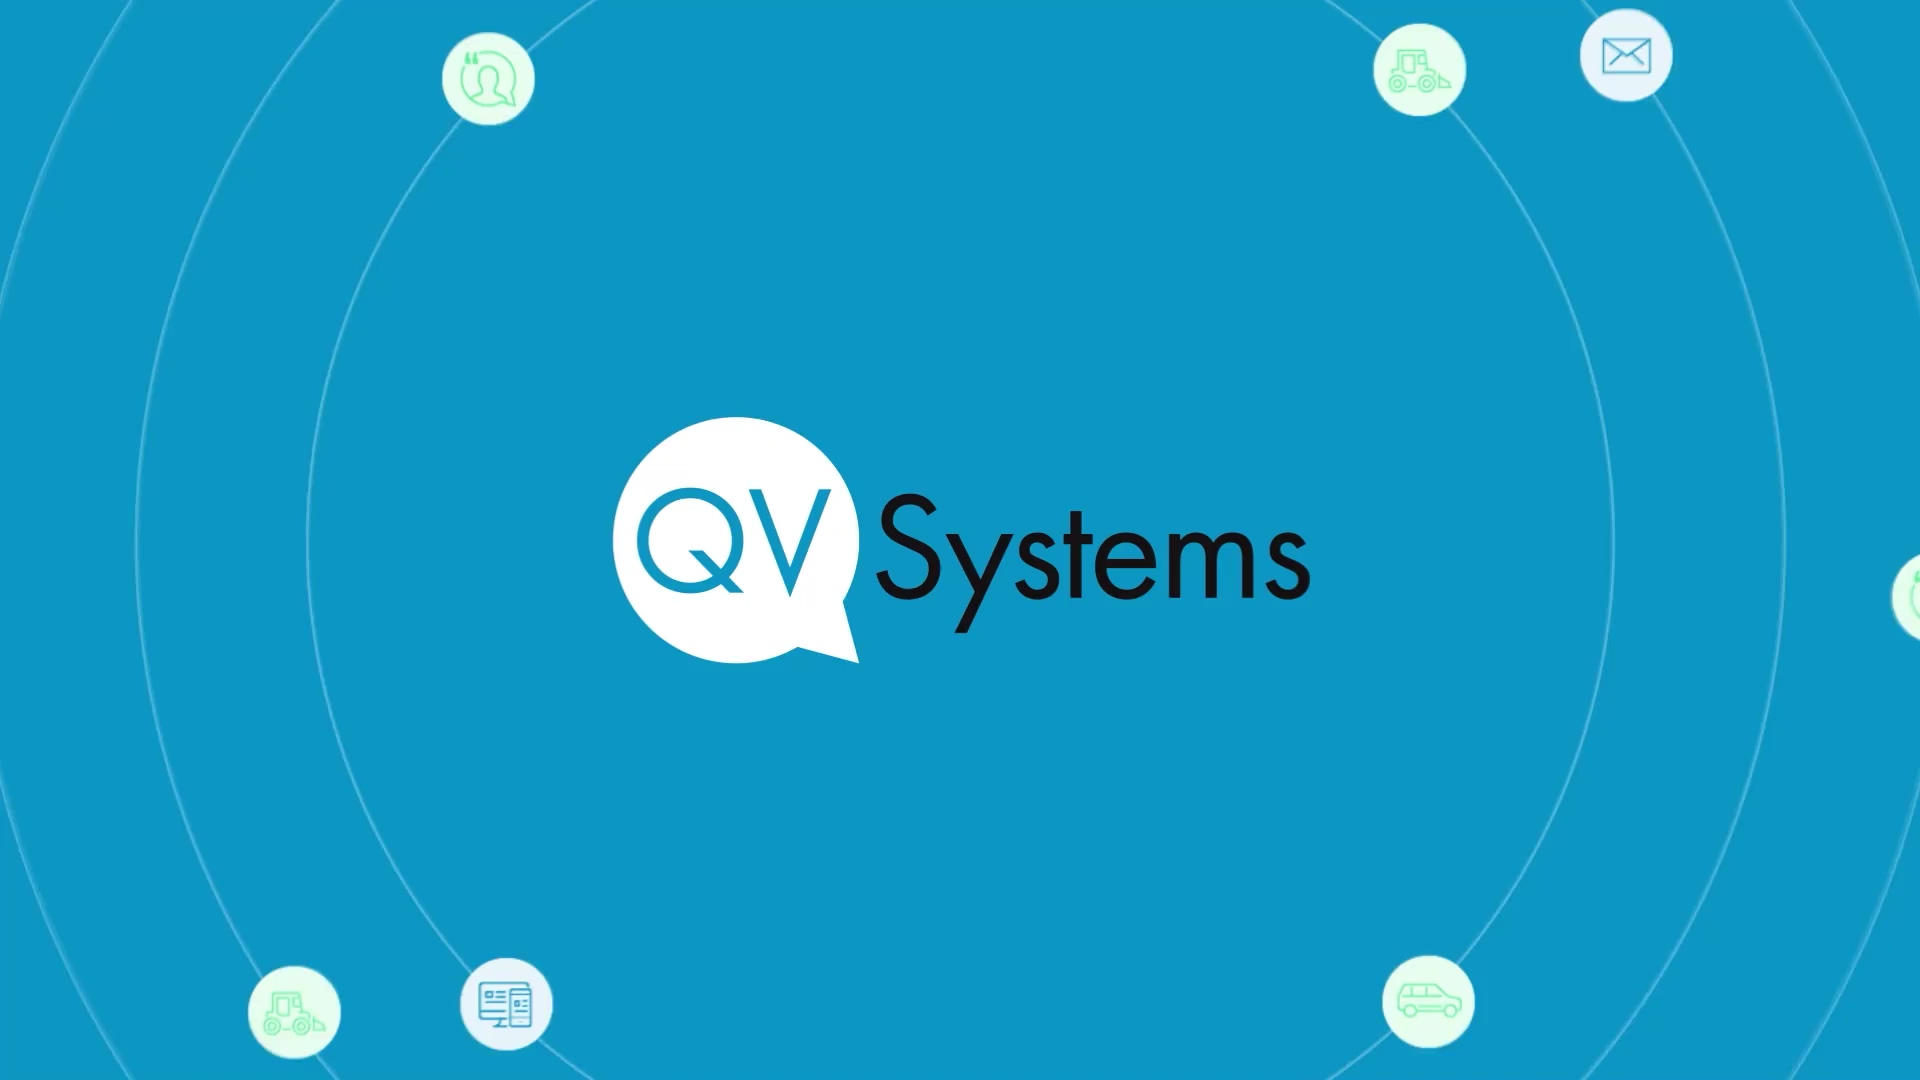 QV Systems Headline Animation